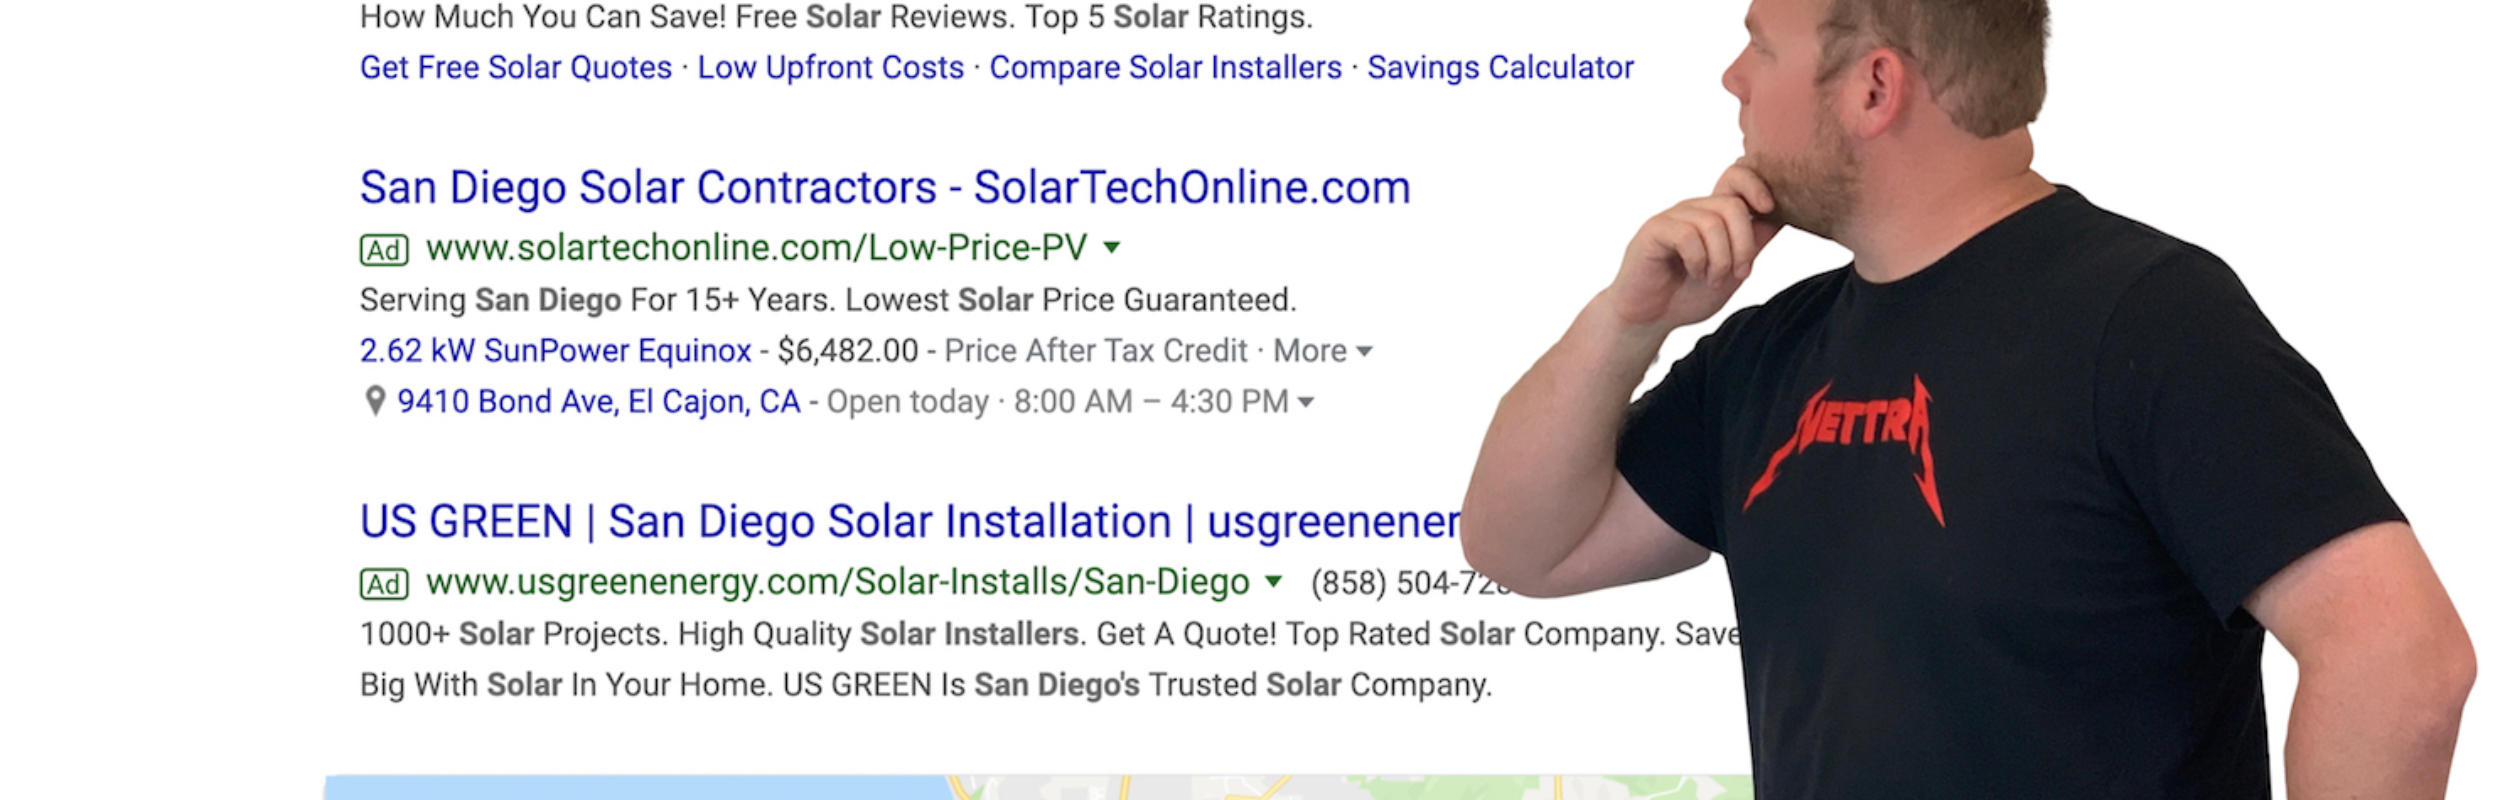 what-to-do-when-google-ads-dont-work